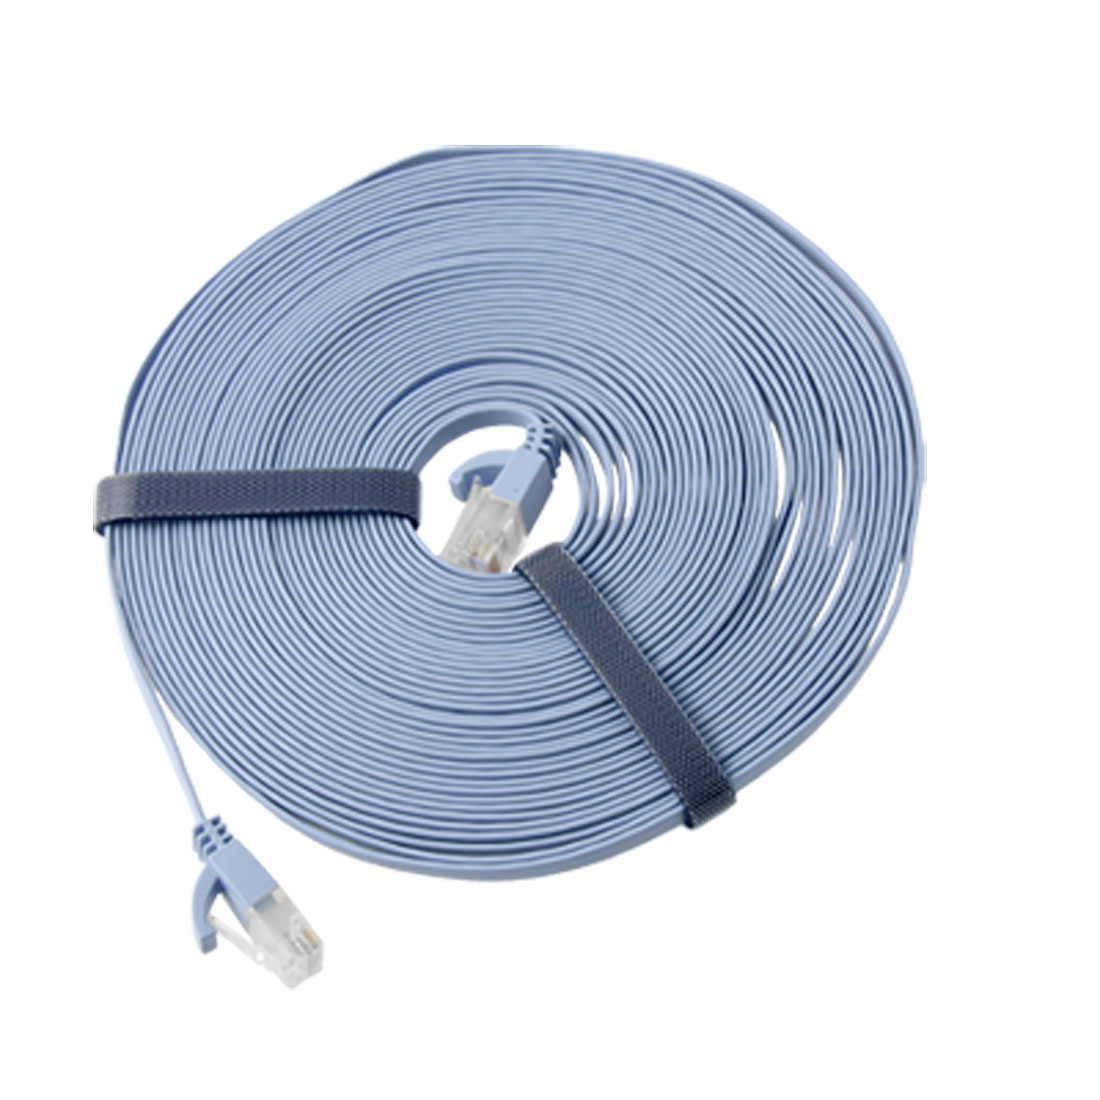 33ft RJ45 UTP CAT6a Cat.6 Flat Data Ethernet Patch Network Lan Cable 10M Blue